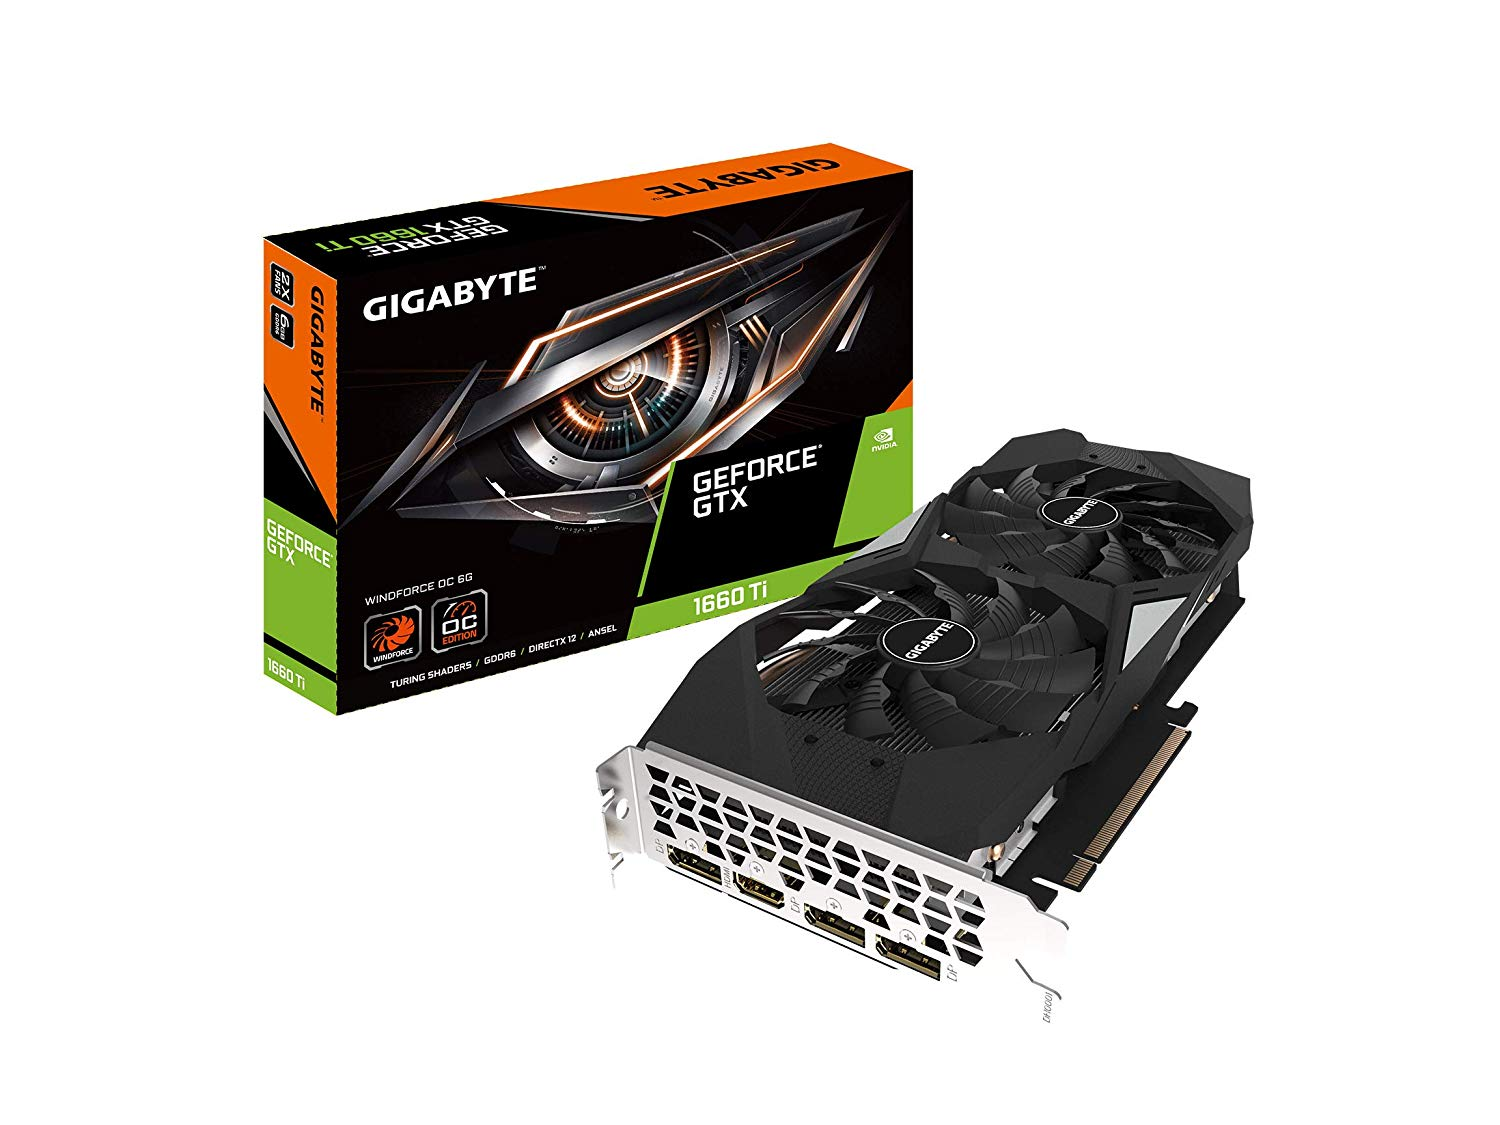 VGA GIGABYTE WINDFORCE GTX 1660TI OC 6G GDDR6 1845 MHz MHz 192-BIT ,Desktop Graphic Card